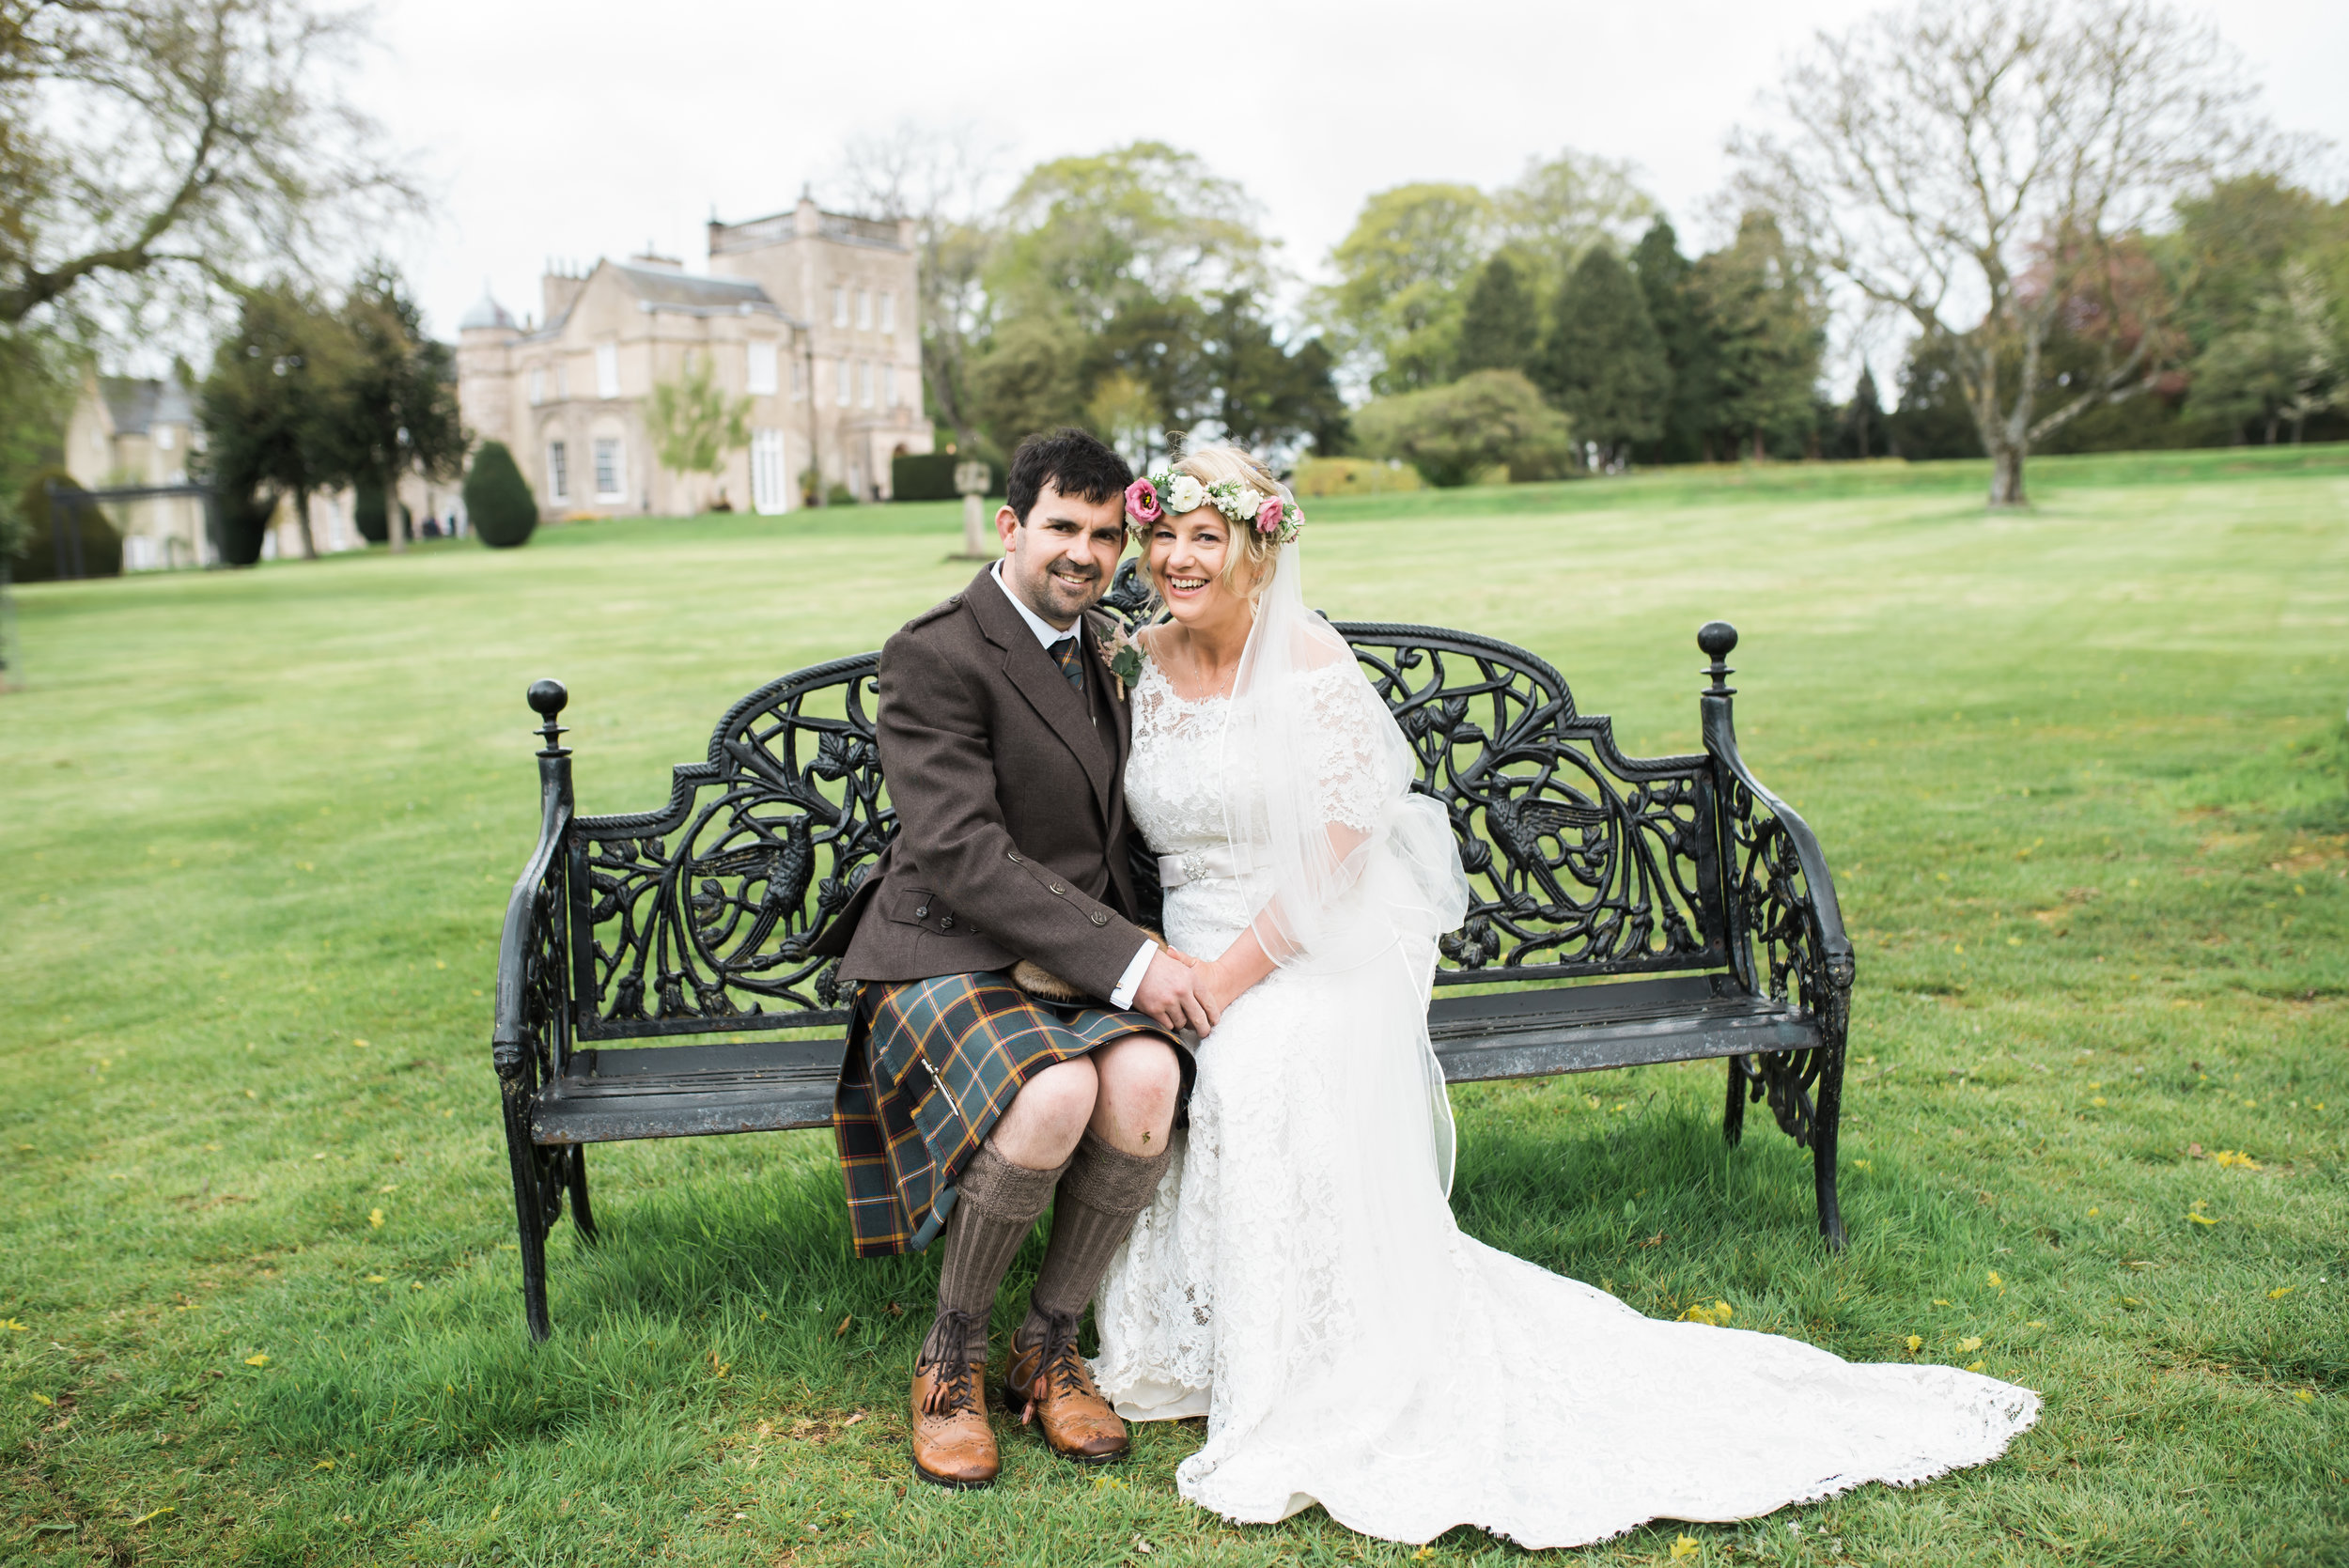 Danirosephotography.weddingphotographer.dycephotographer.aberdeenweddingphotography.pittodriehousewedding3.jpg